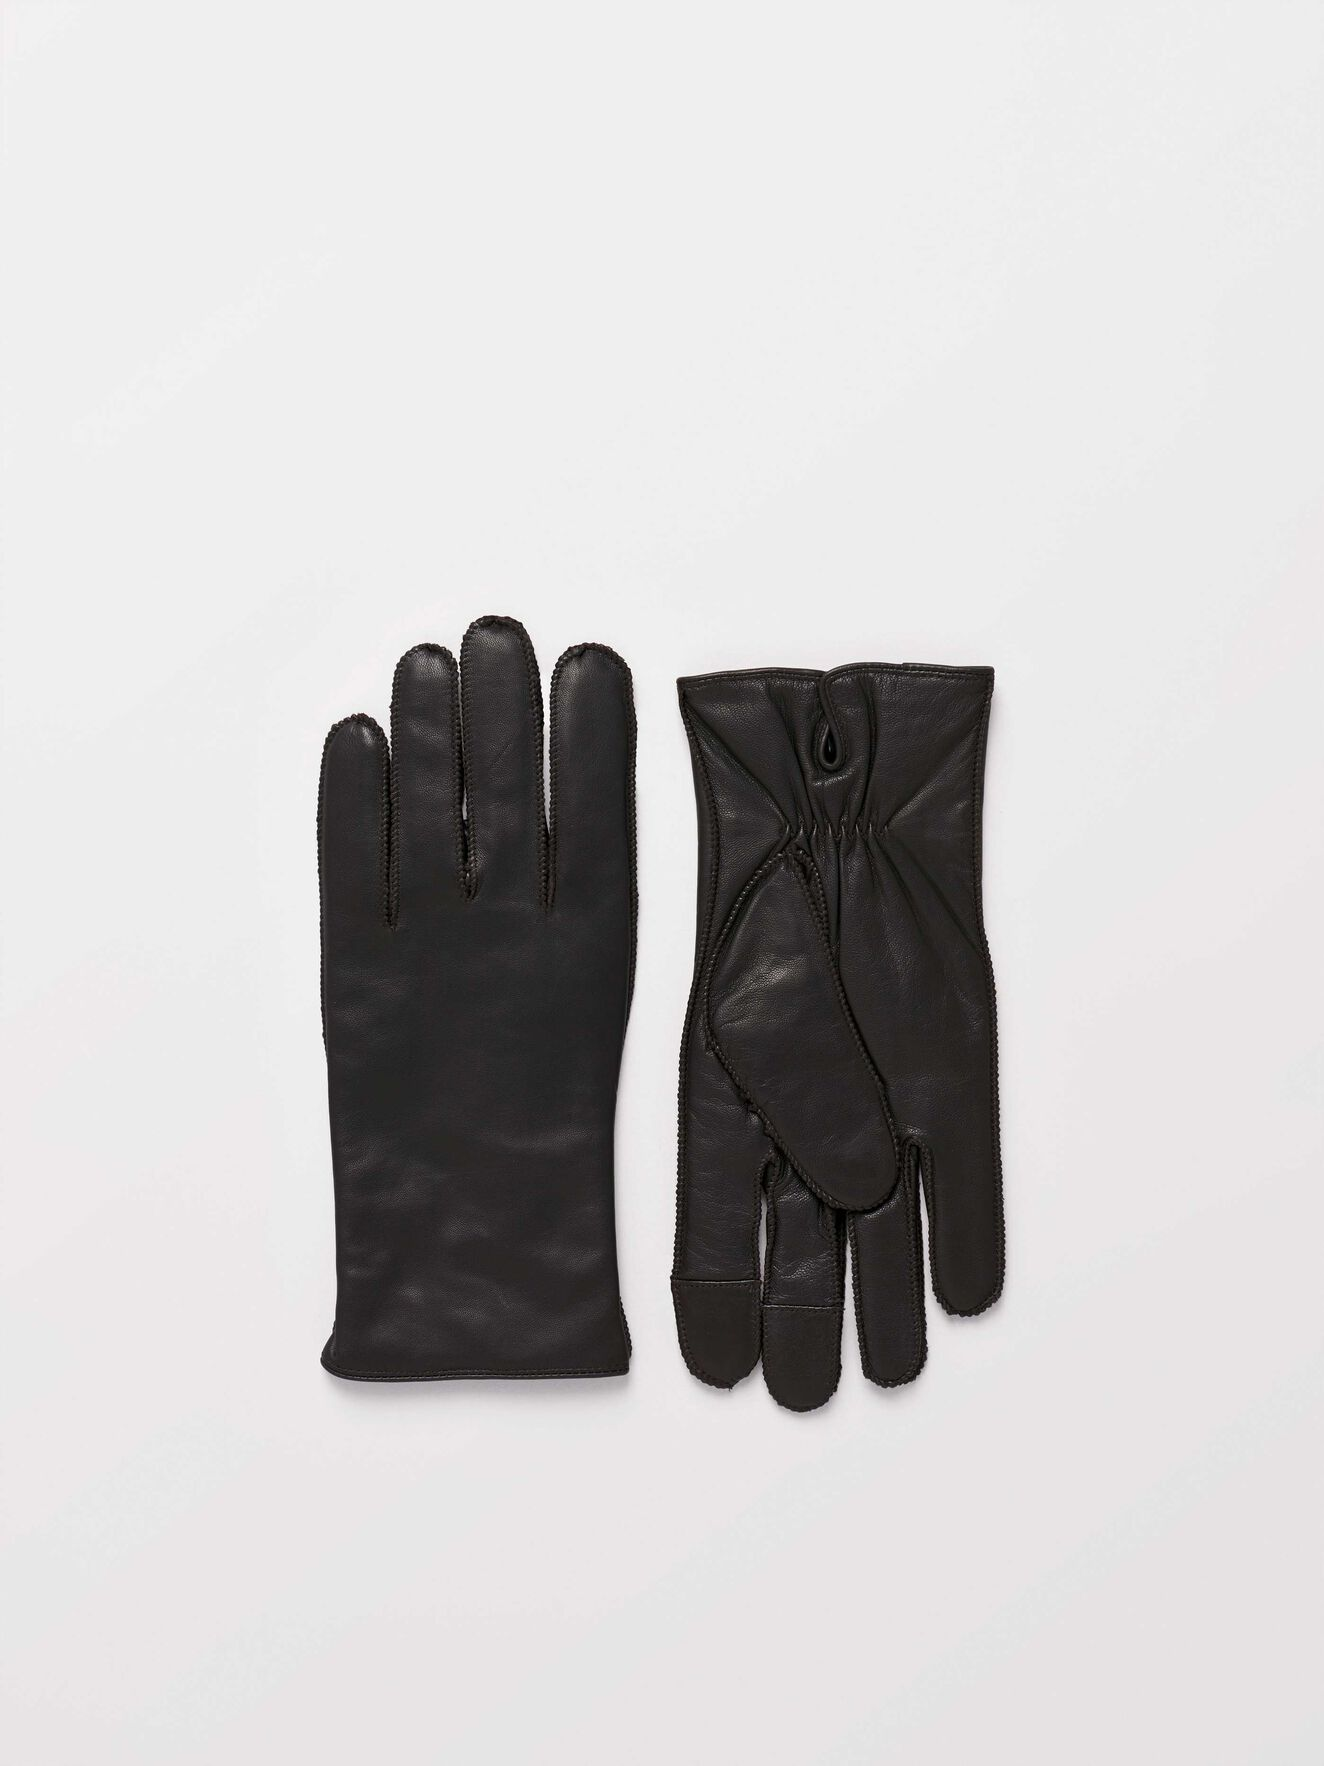 Gandalus Gloves in Dark Brown from Tiger of Sweden